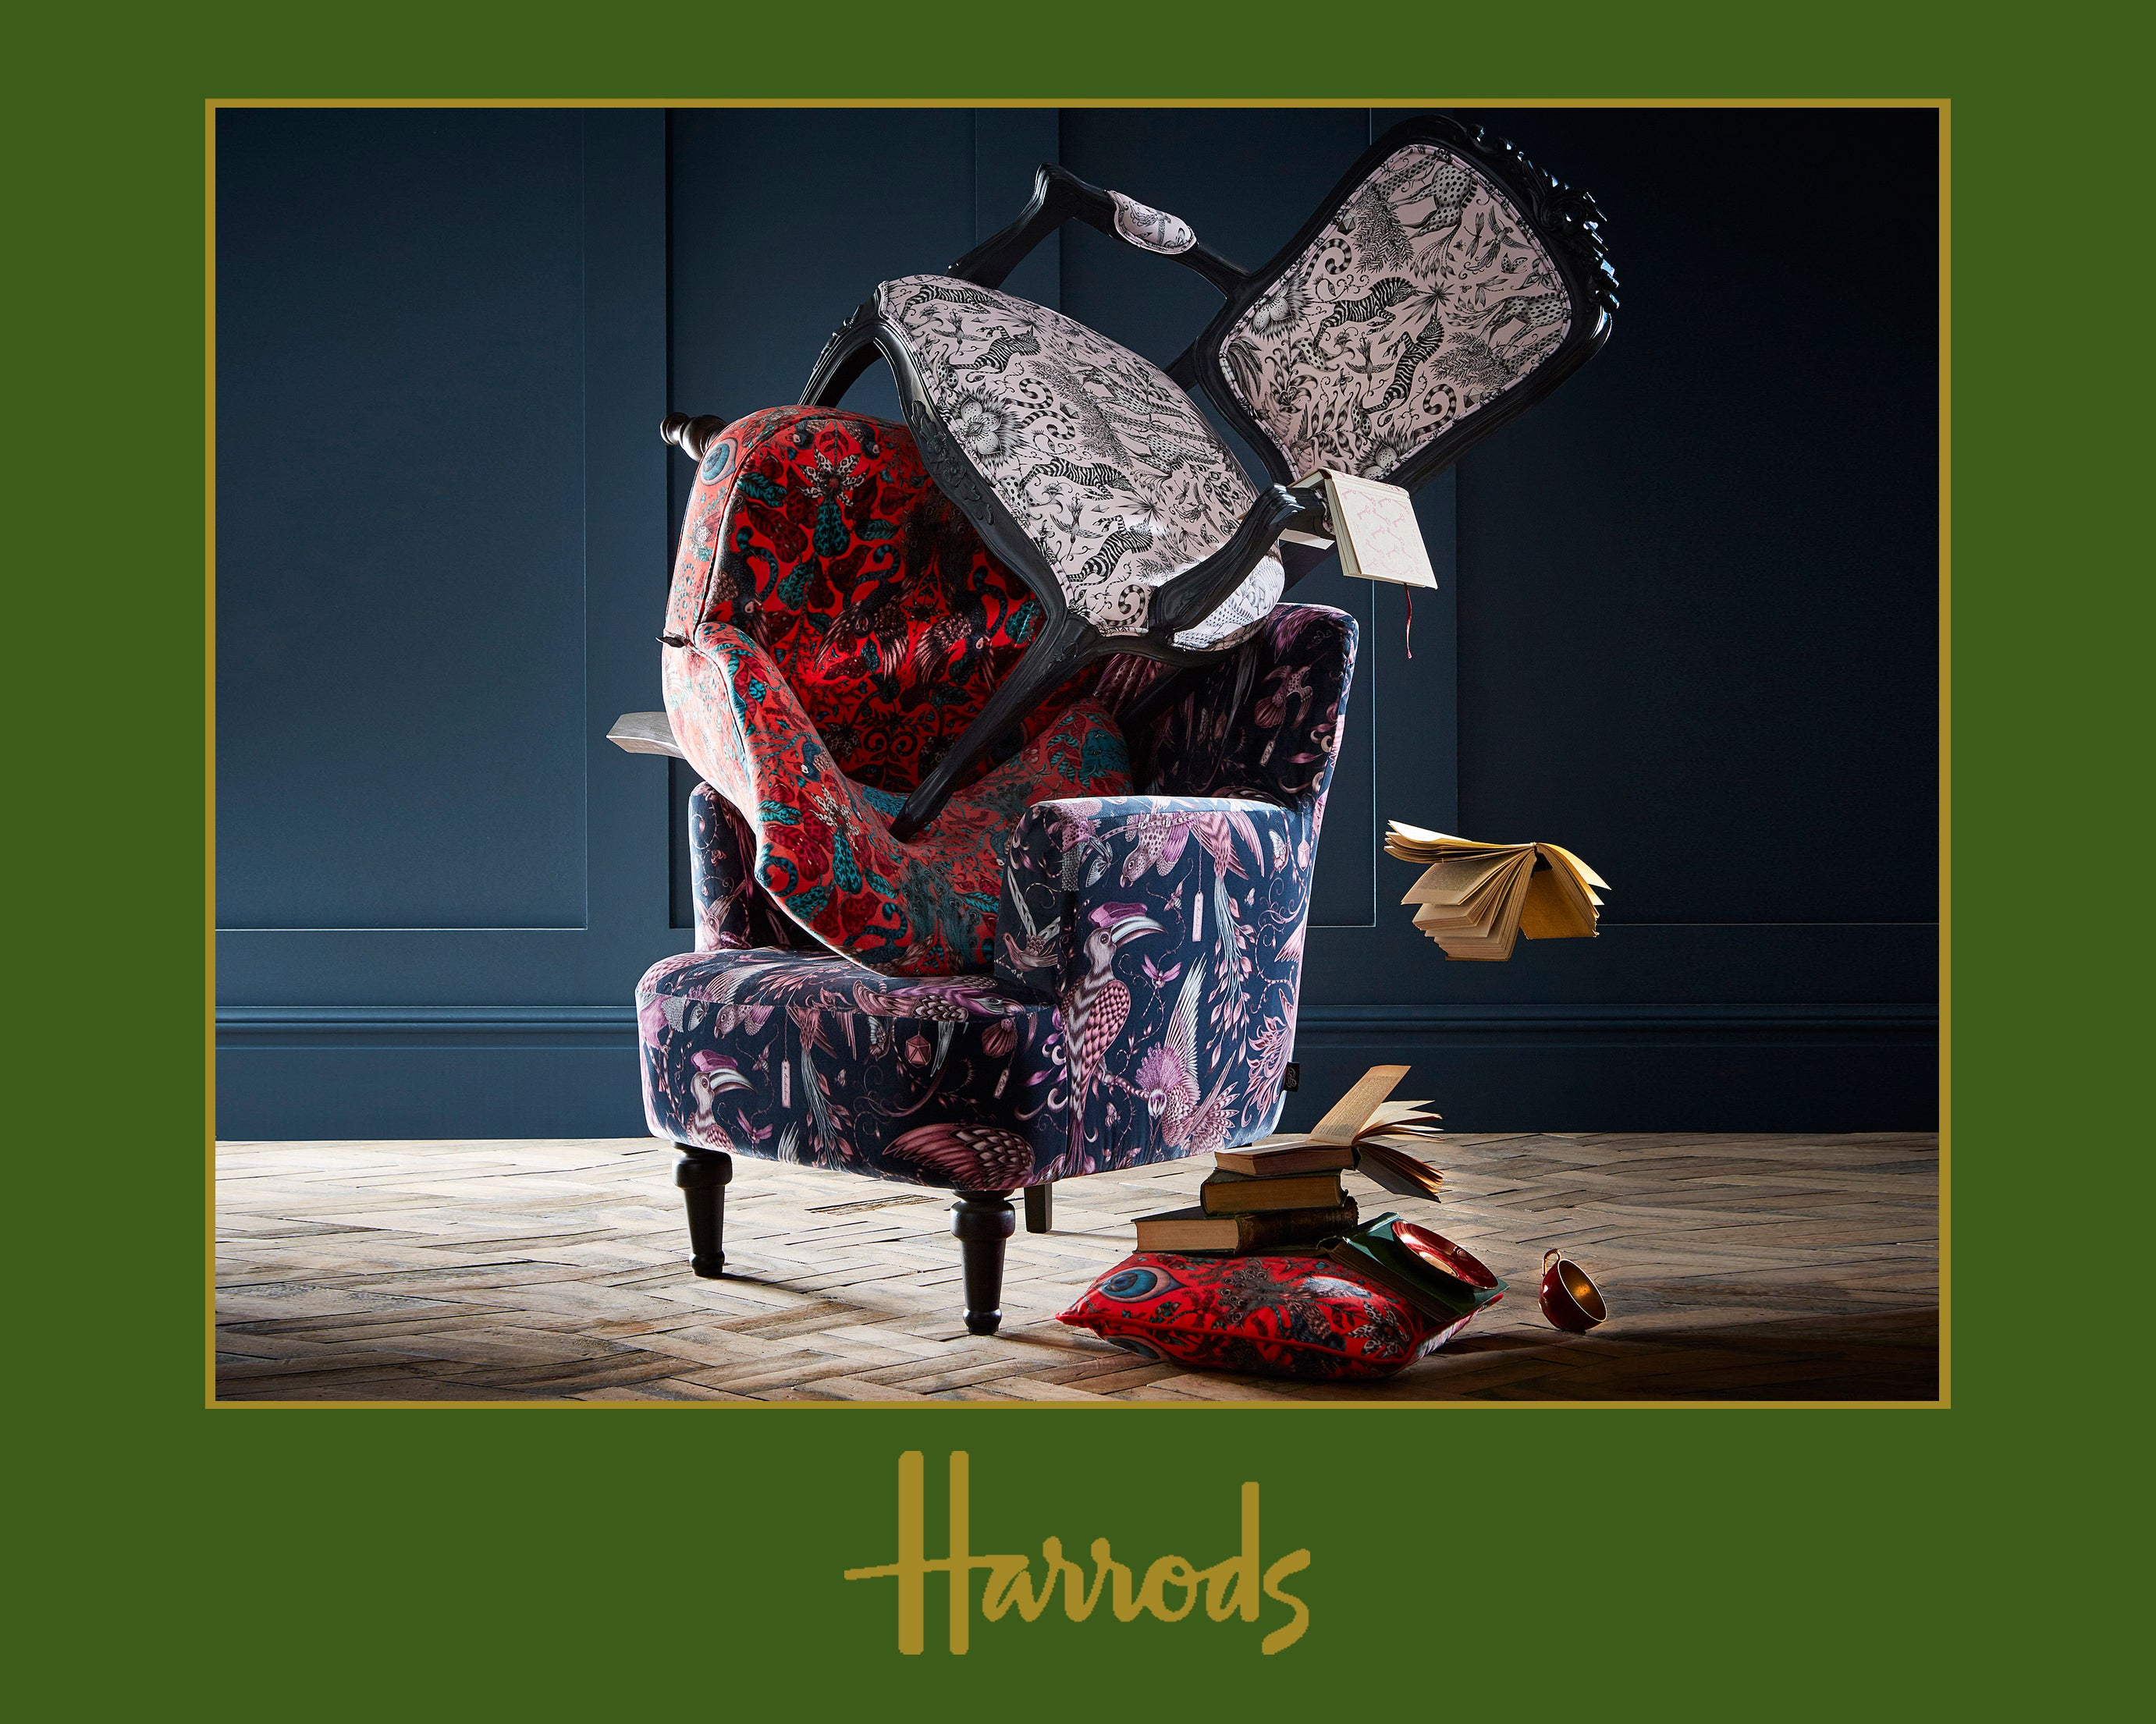 Weu0027re Delighted To Reveal Our Brand New Range Of Stunning Upholstered  Furniture Made In Collaboration With Interior Experts Clarke U0026 Clarke.